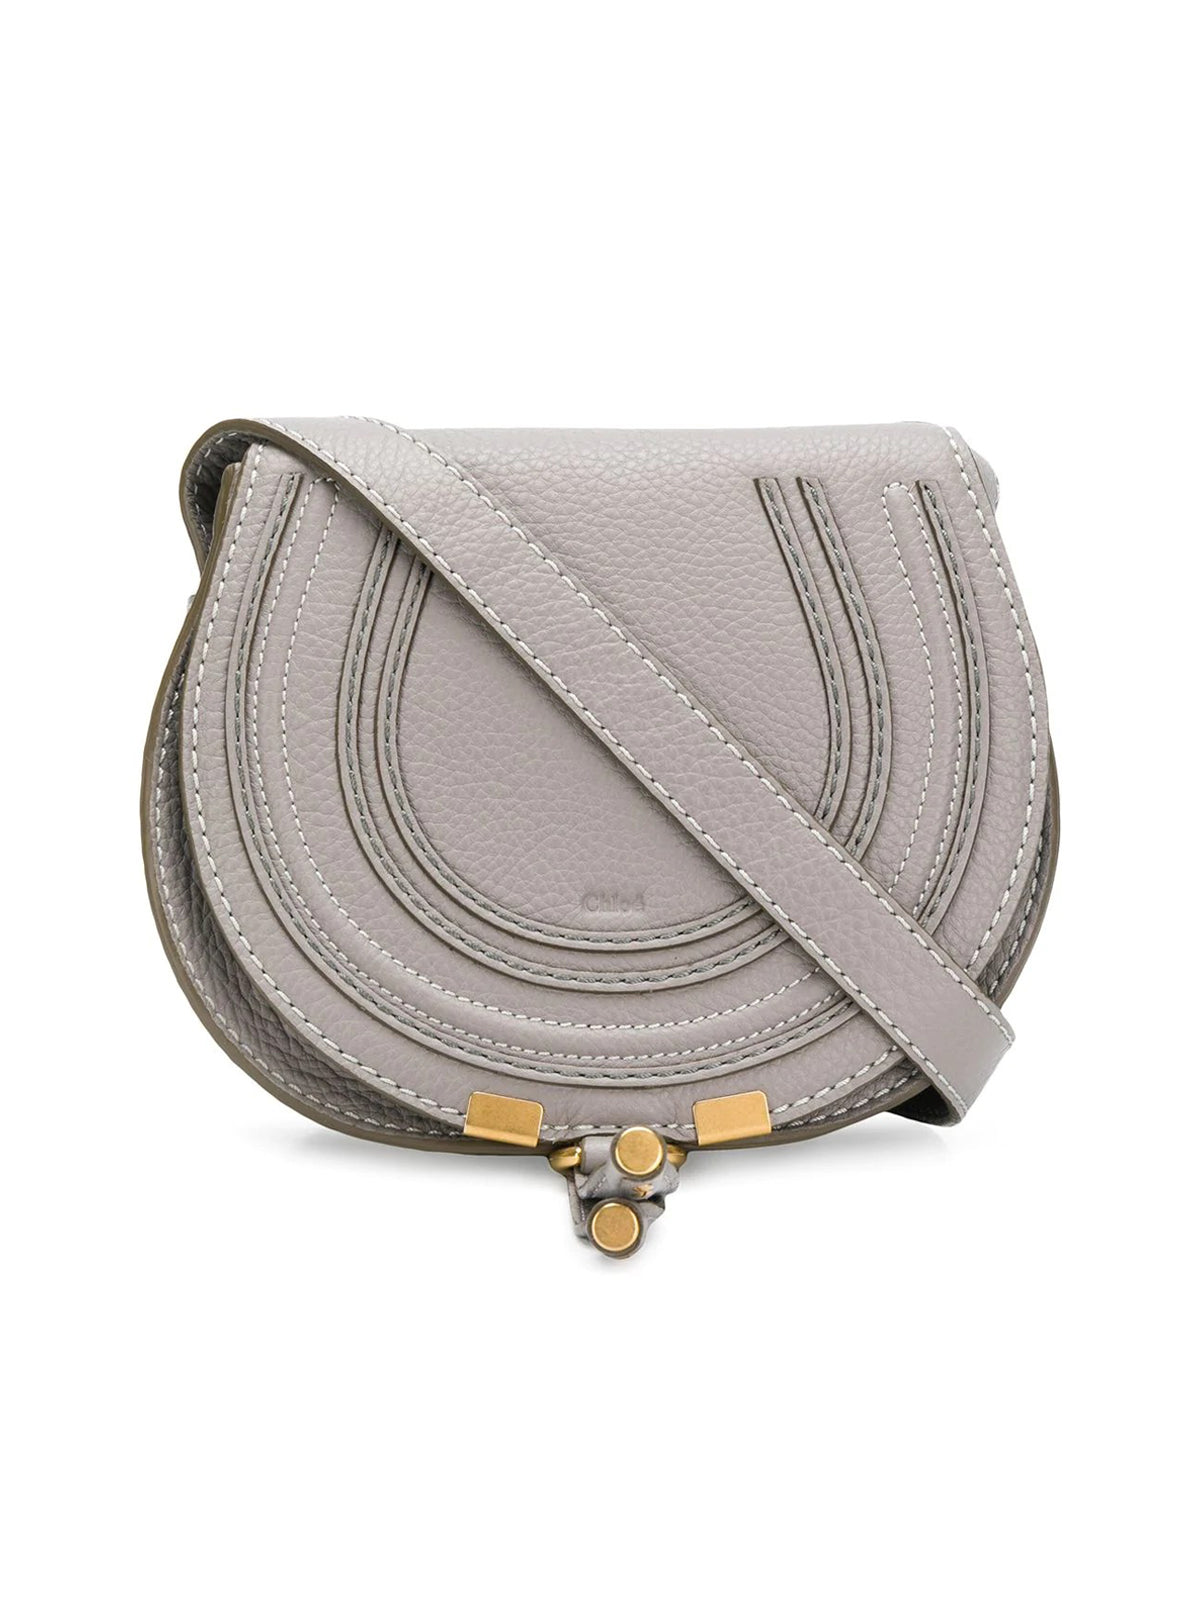 Chloé Marcie Shoulder Bag In Grey